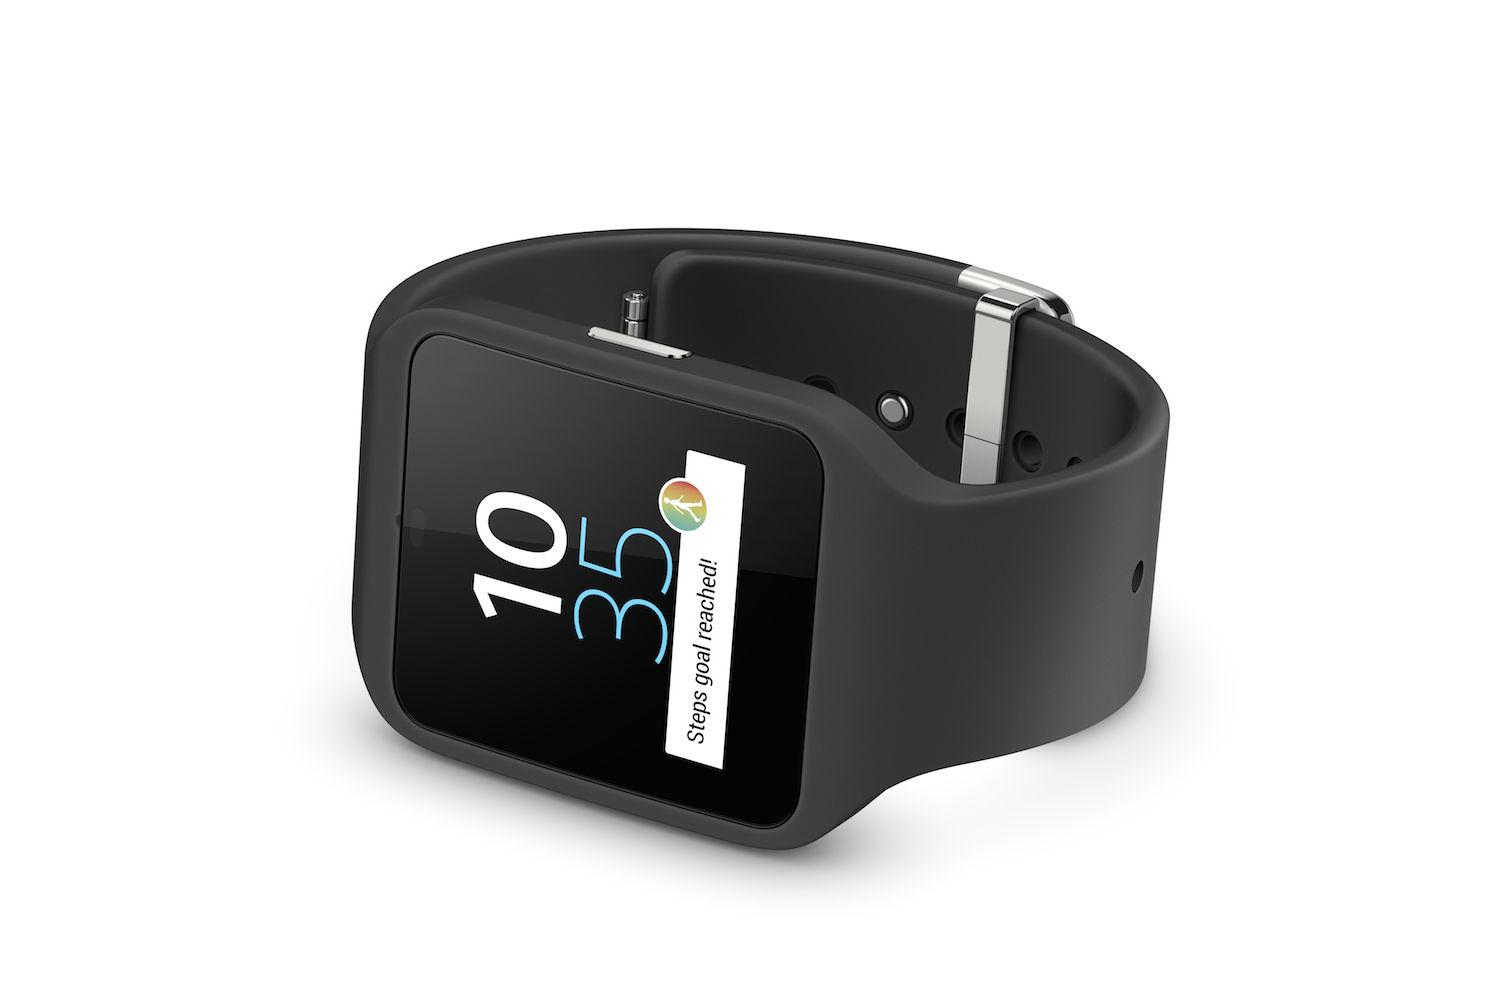 Sony Smartwatch Review: Smartwatch 3 with a Decent Display and a Great Performance